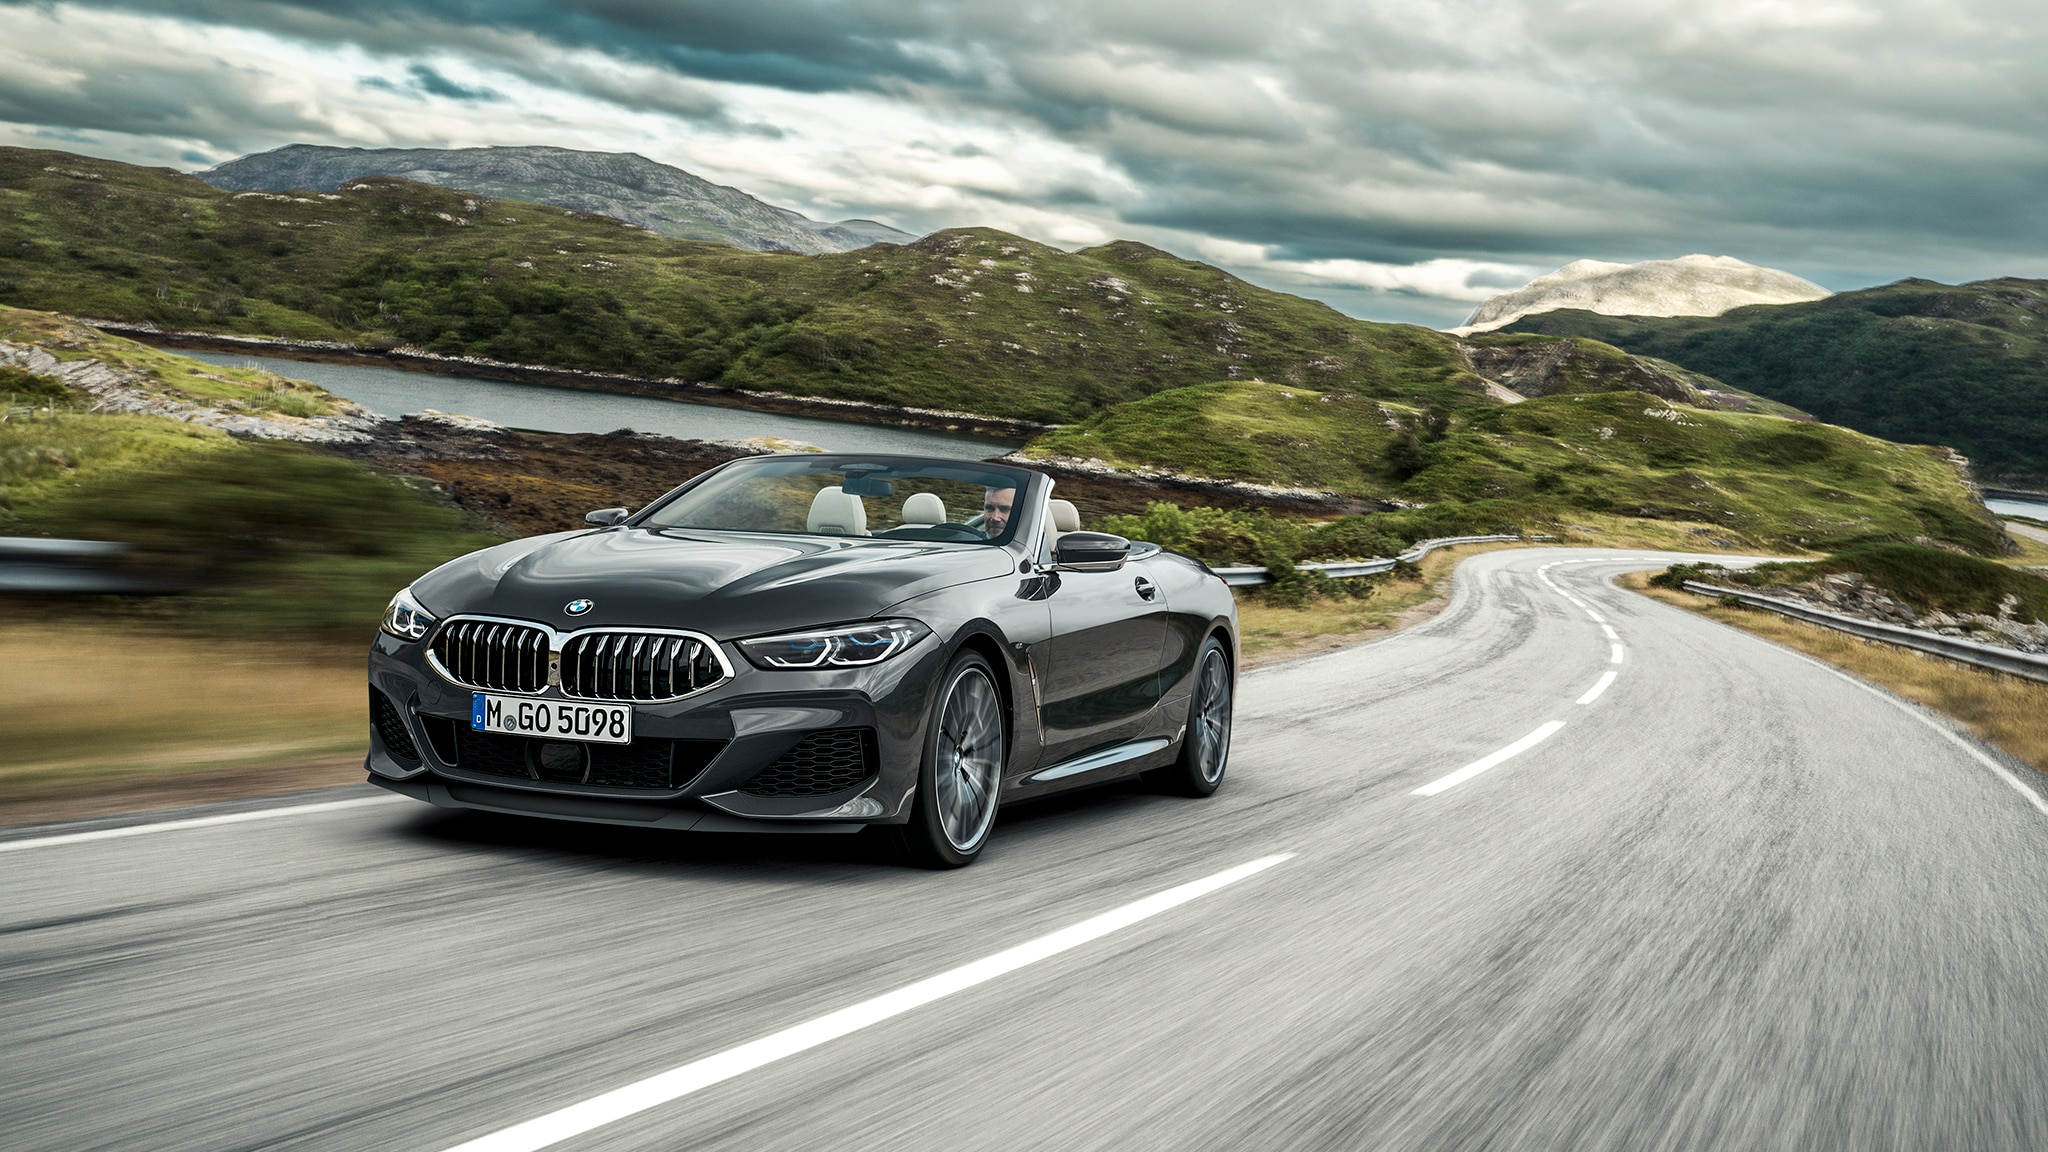 2019 BMW M850i Convertible Front Side Motion View